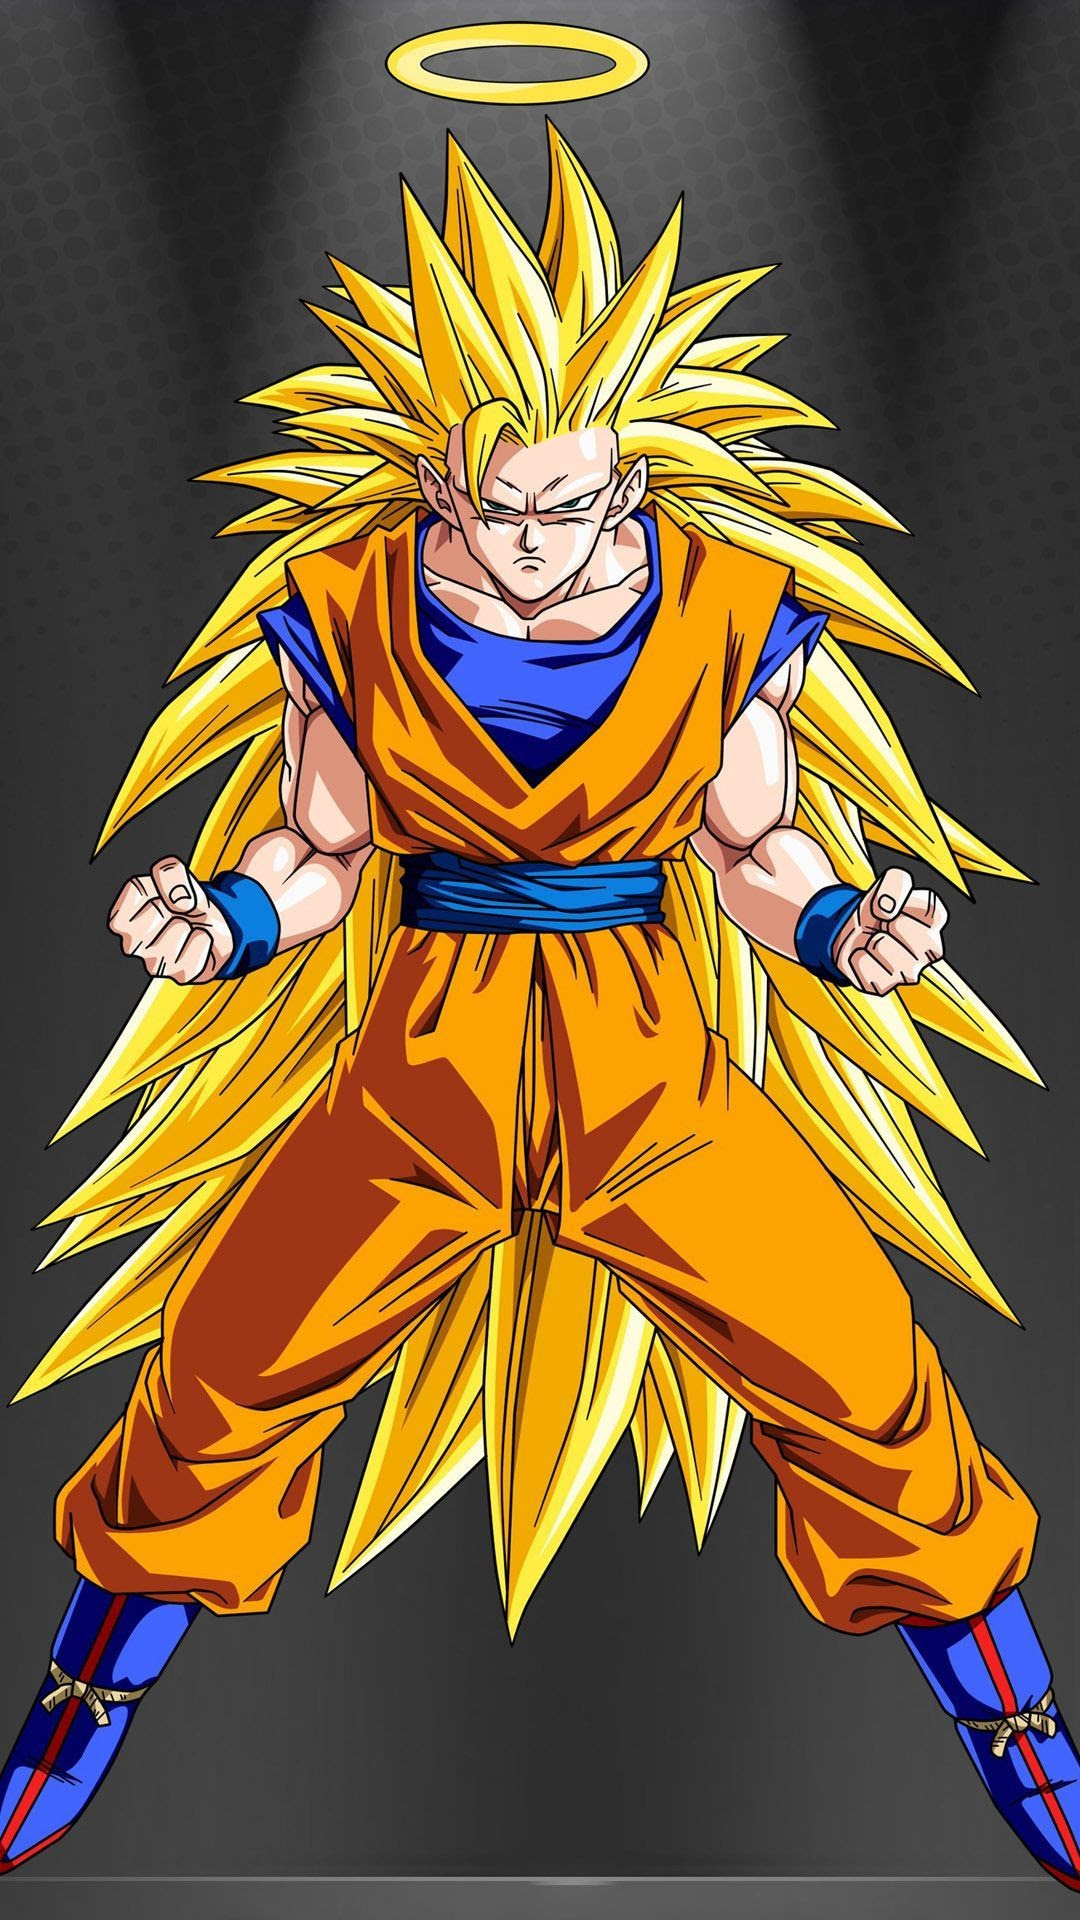 Newest For Dragon Ball Z Pictures Of Goku Super Saiyan 1000